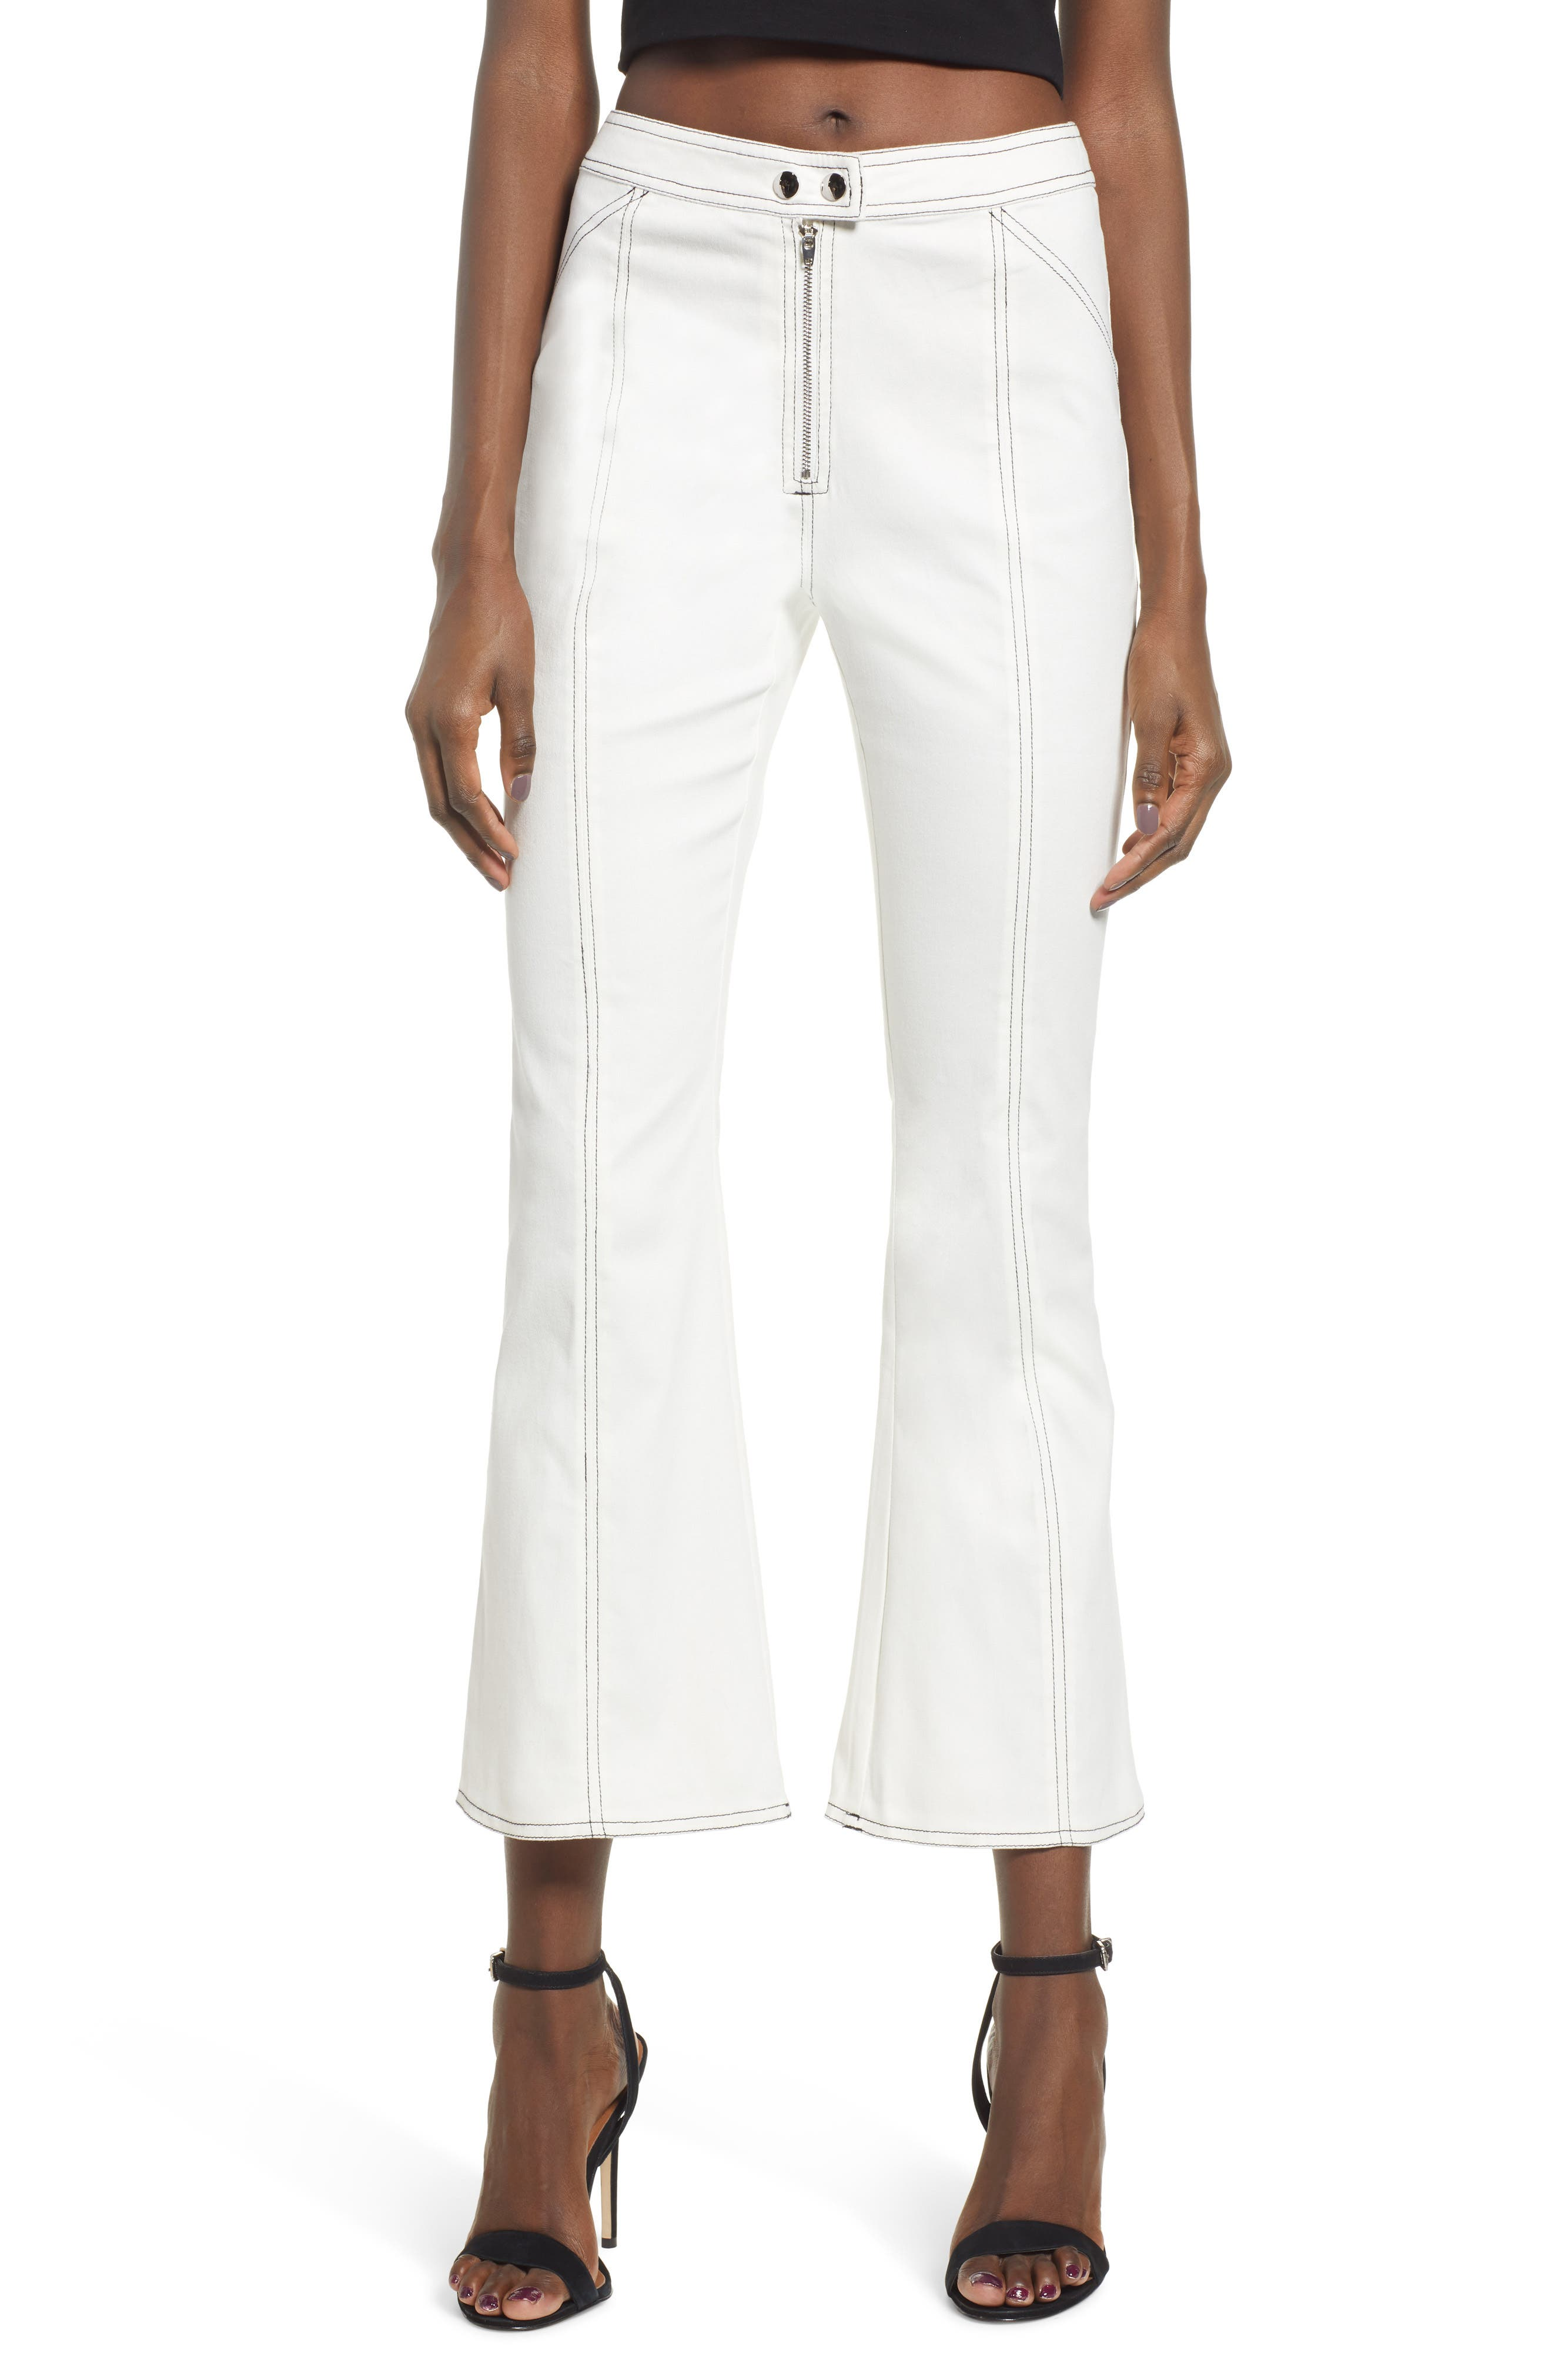 Tiger Mist Ava Flare Pants, White